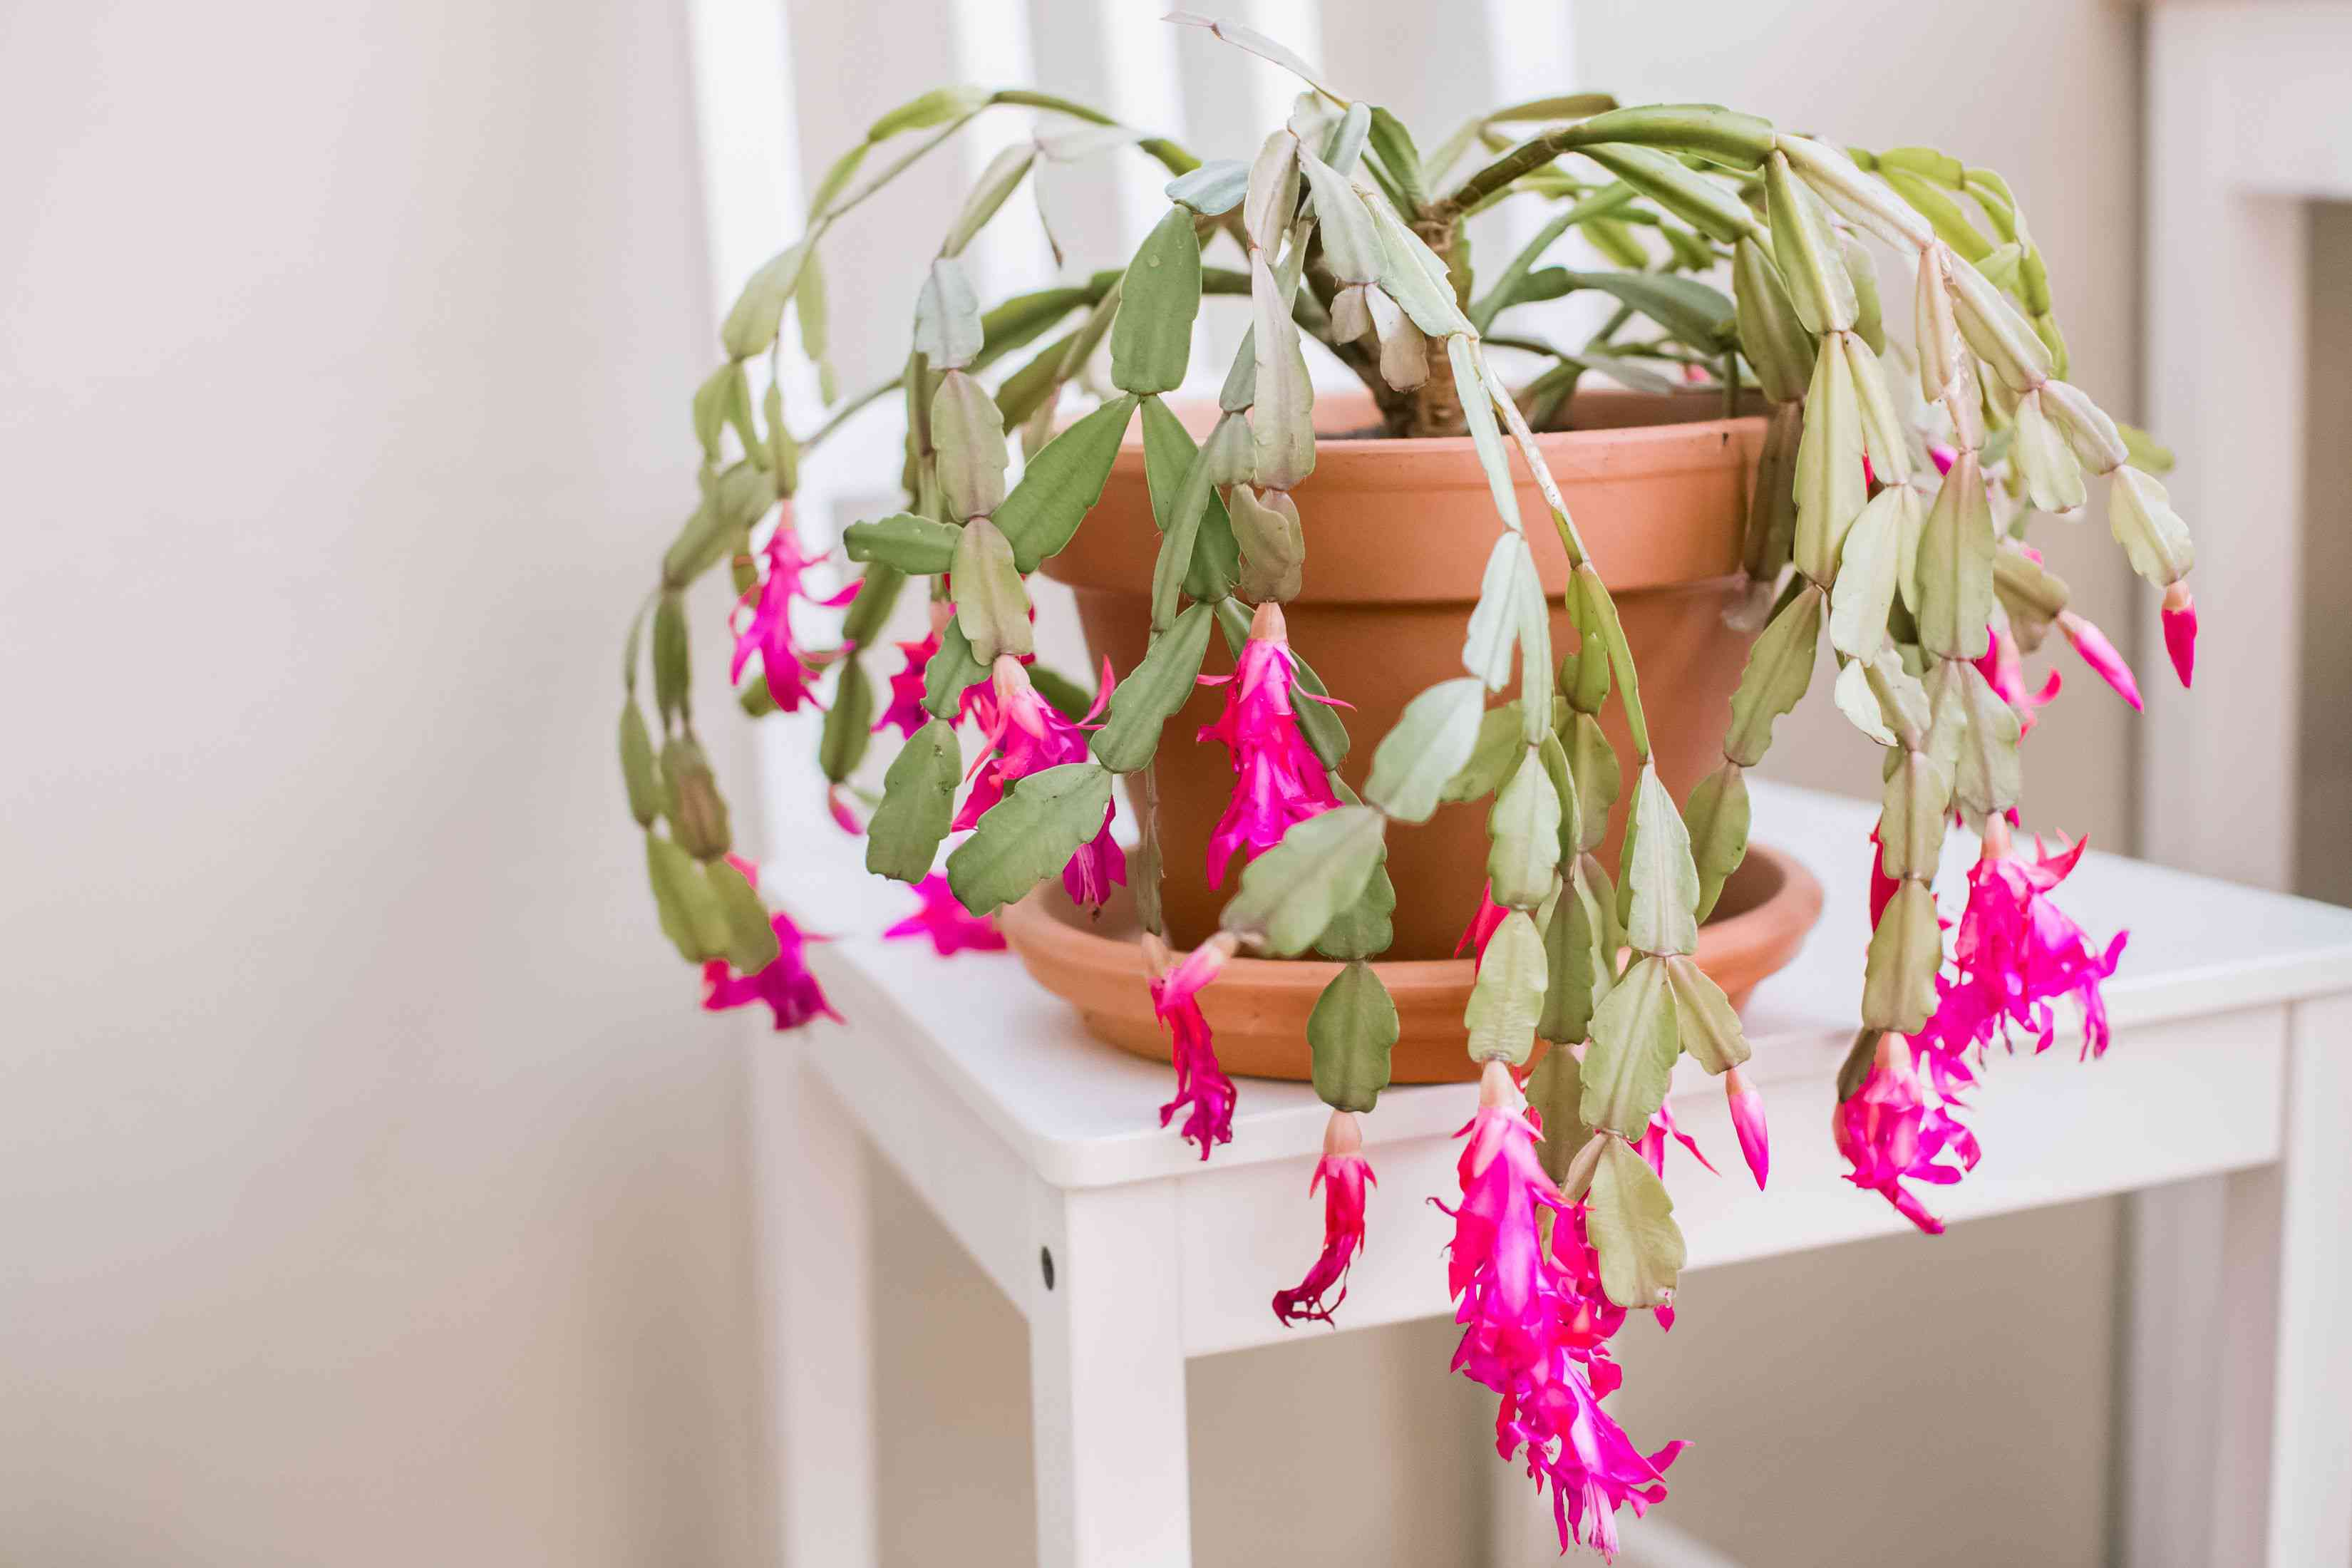 Christmas cactus in orange pot with bright pink flowers hanging on ends of segmented leaves